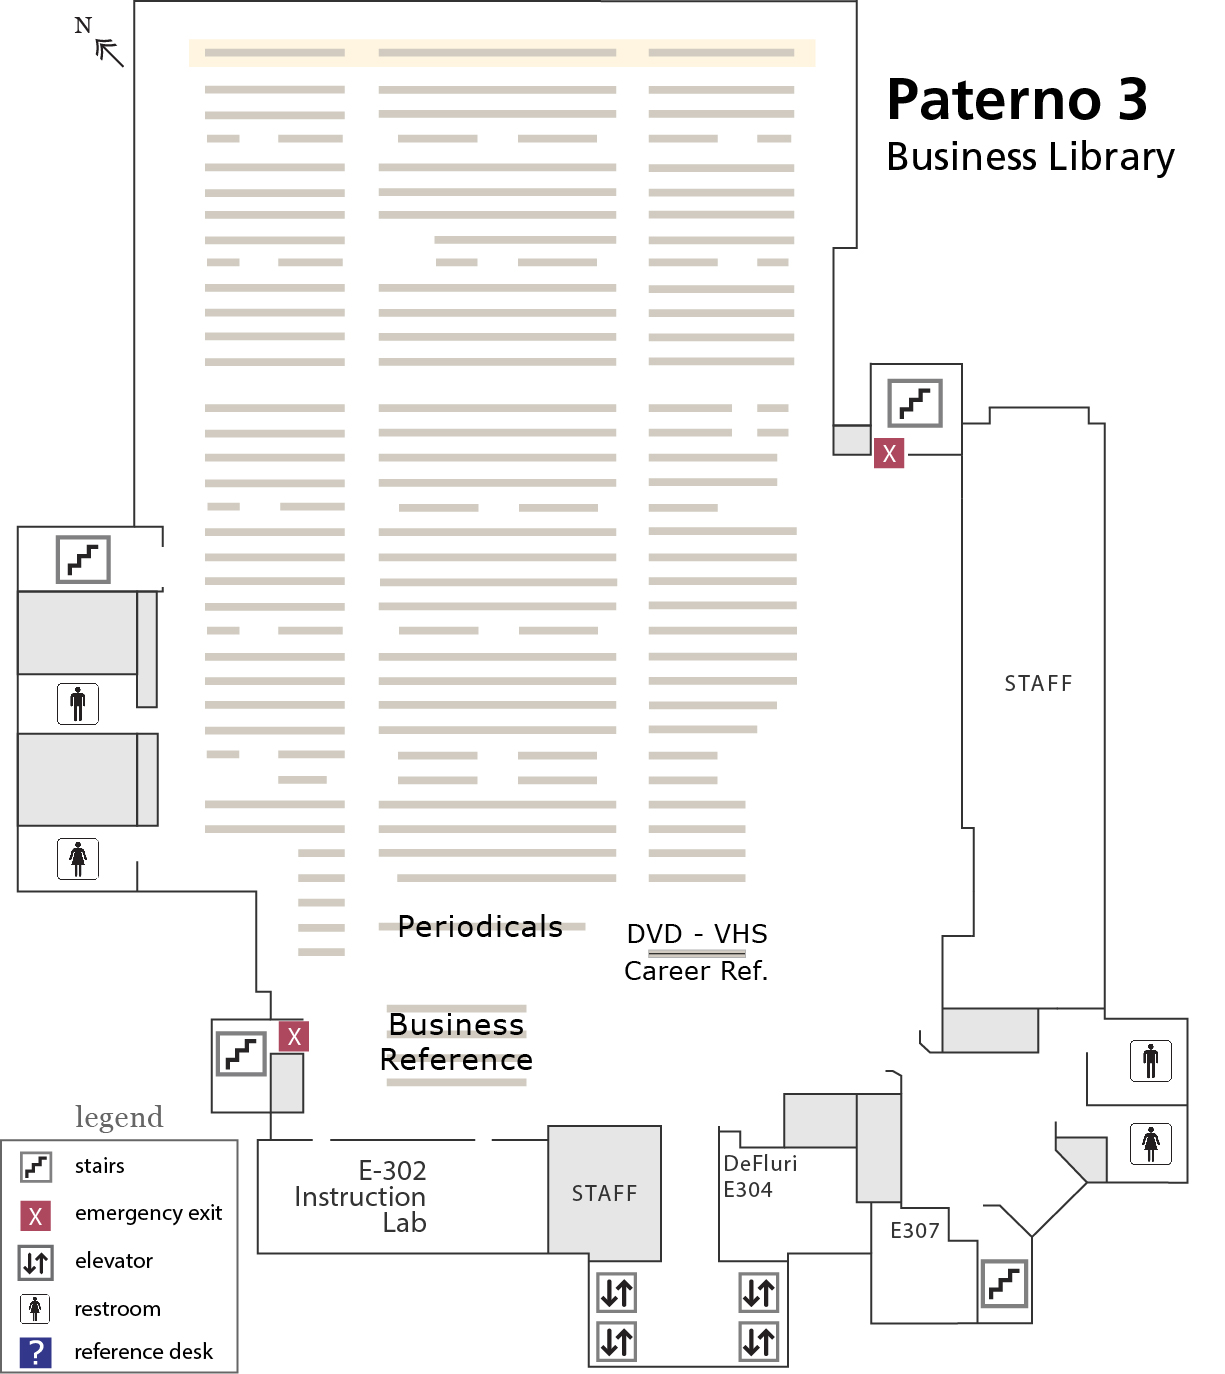 Paterno 3rd floor map